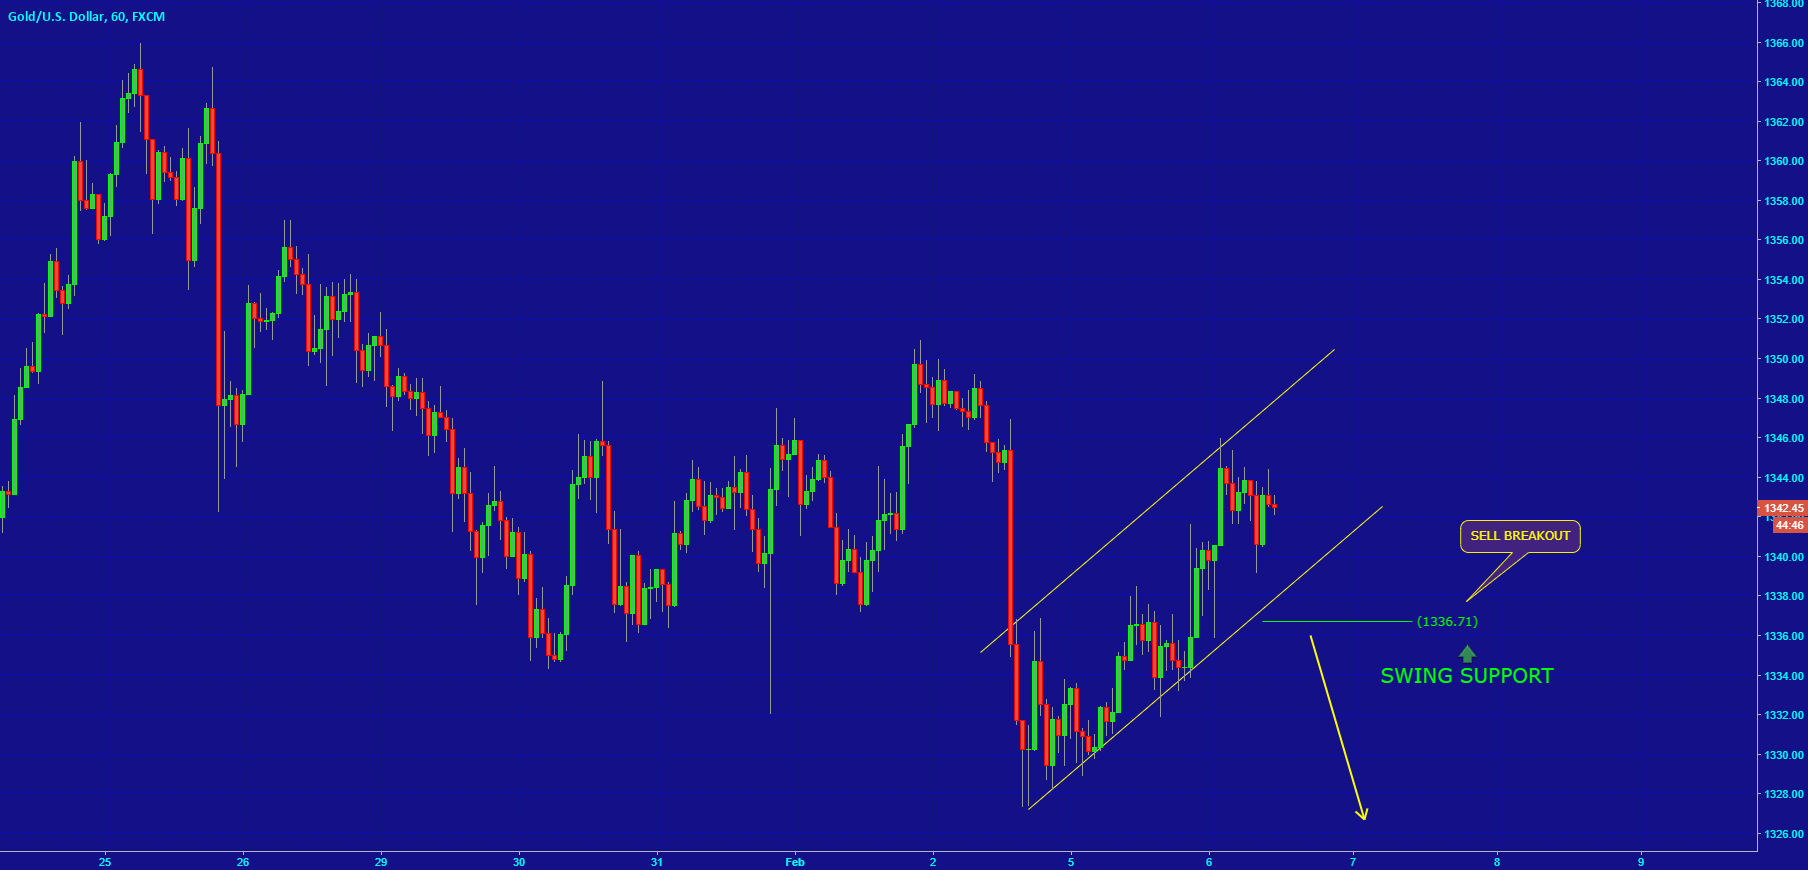 [GOLD] POTENTIAL PULLBACK IN SHORT TERM